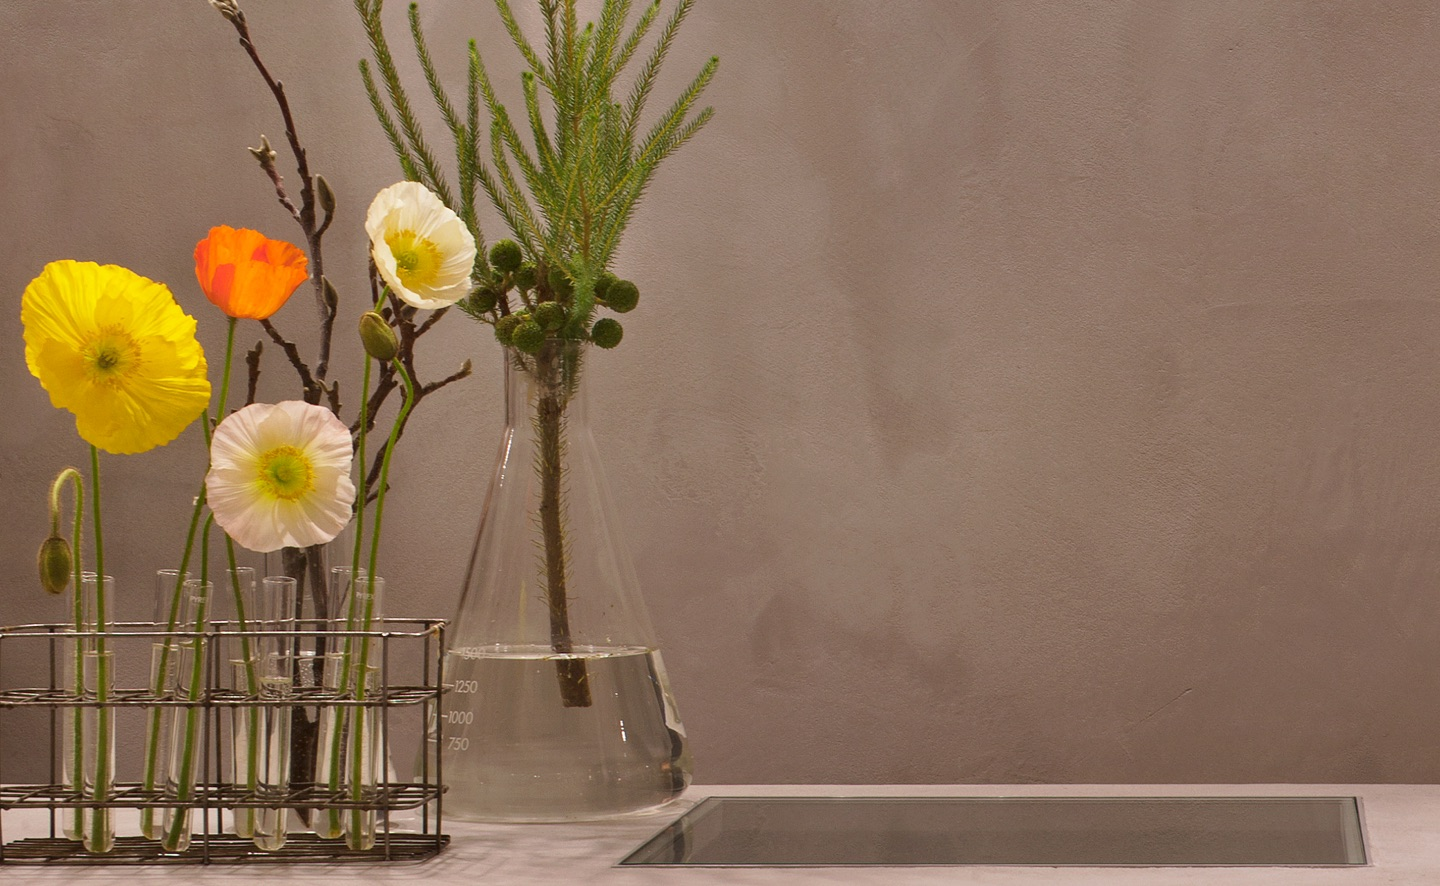 cremorne velvet wall finish with flowers and water vase